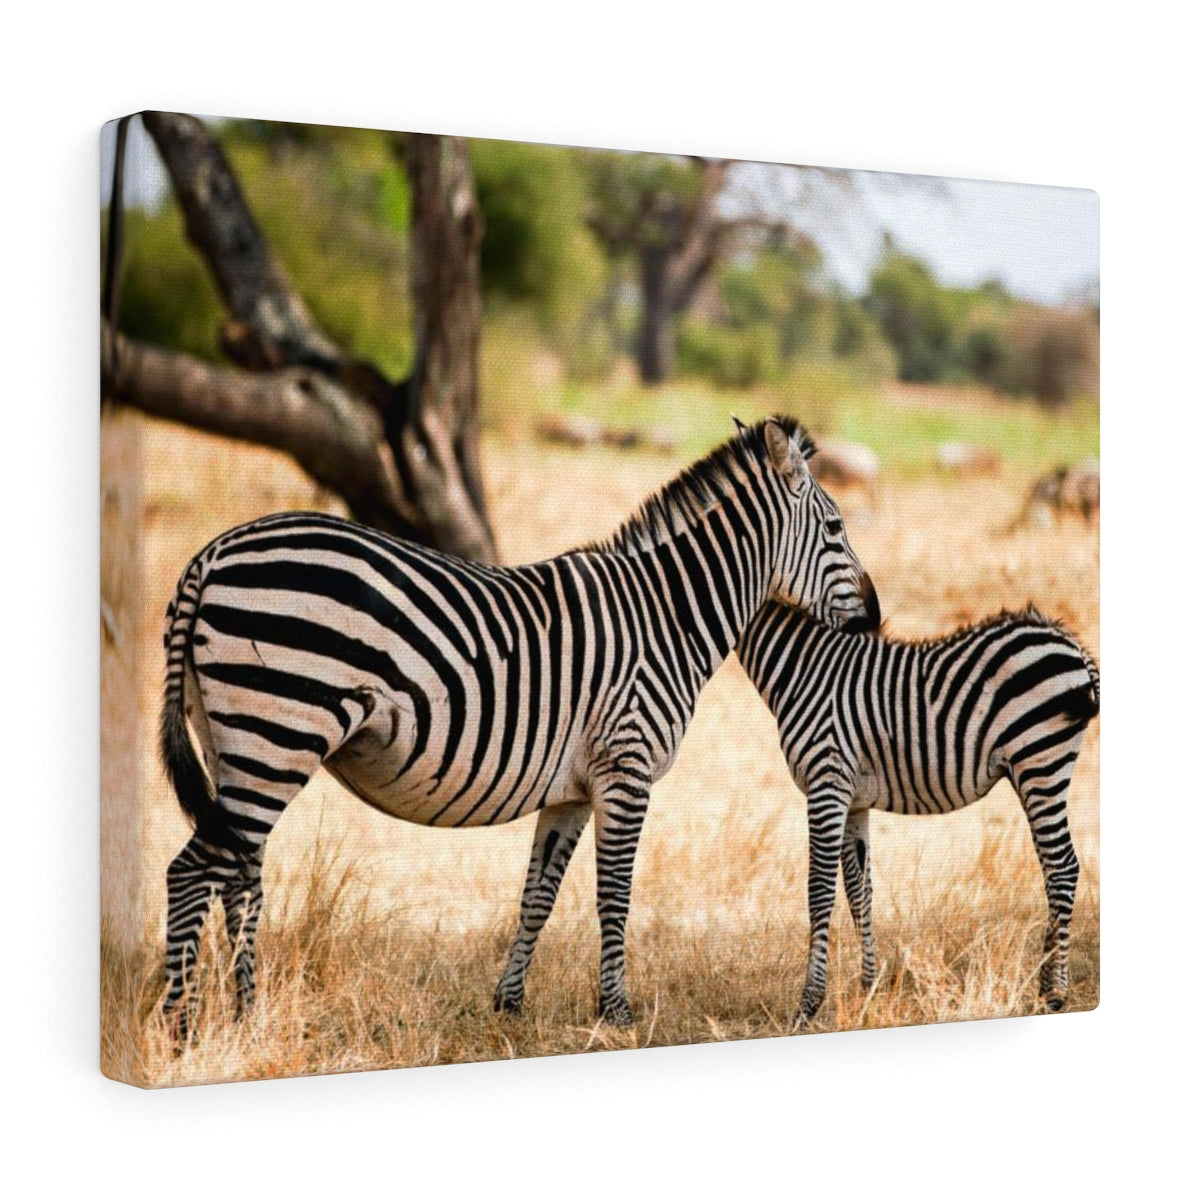 Zebra Hug - Canvas